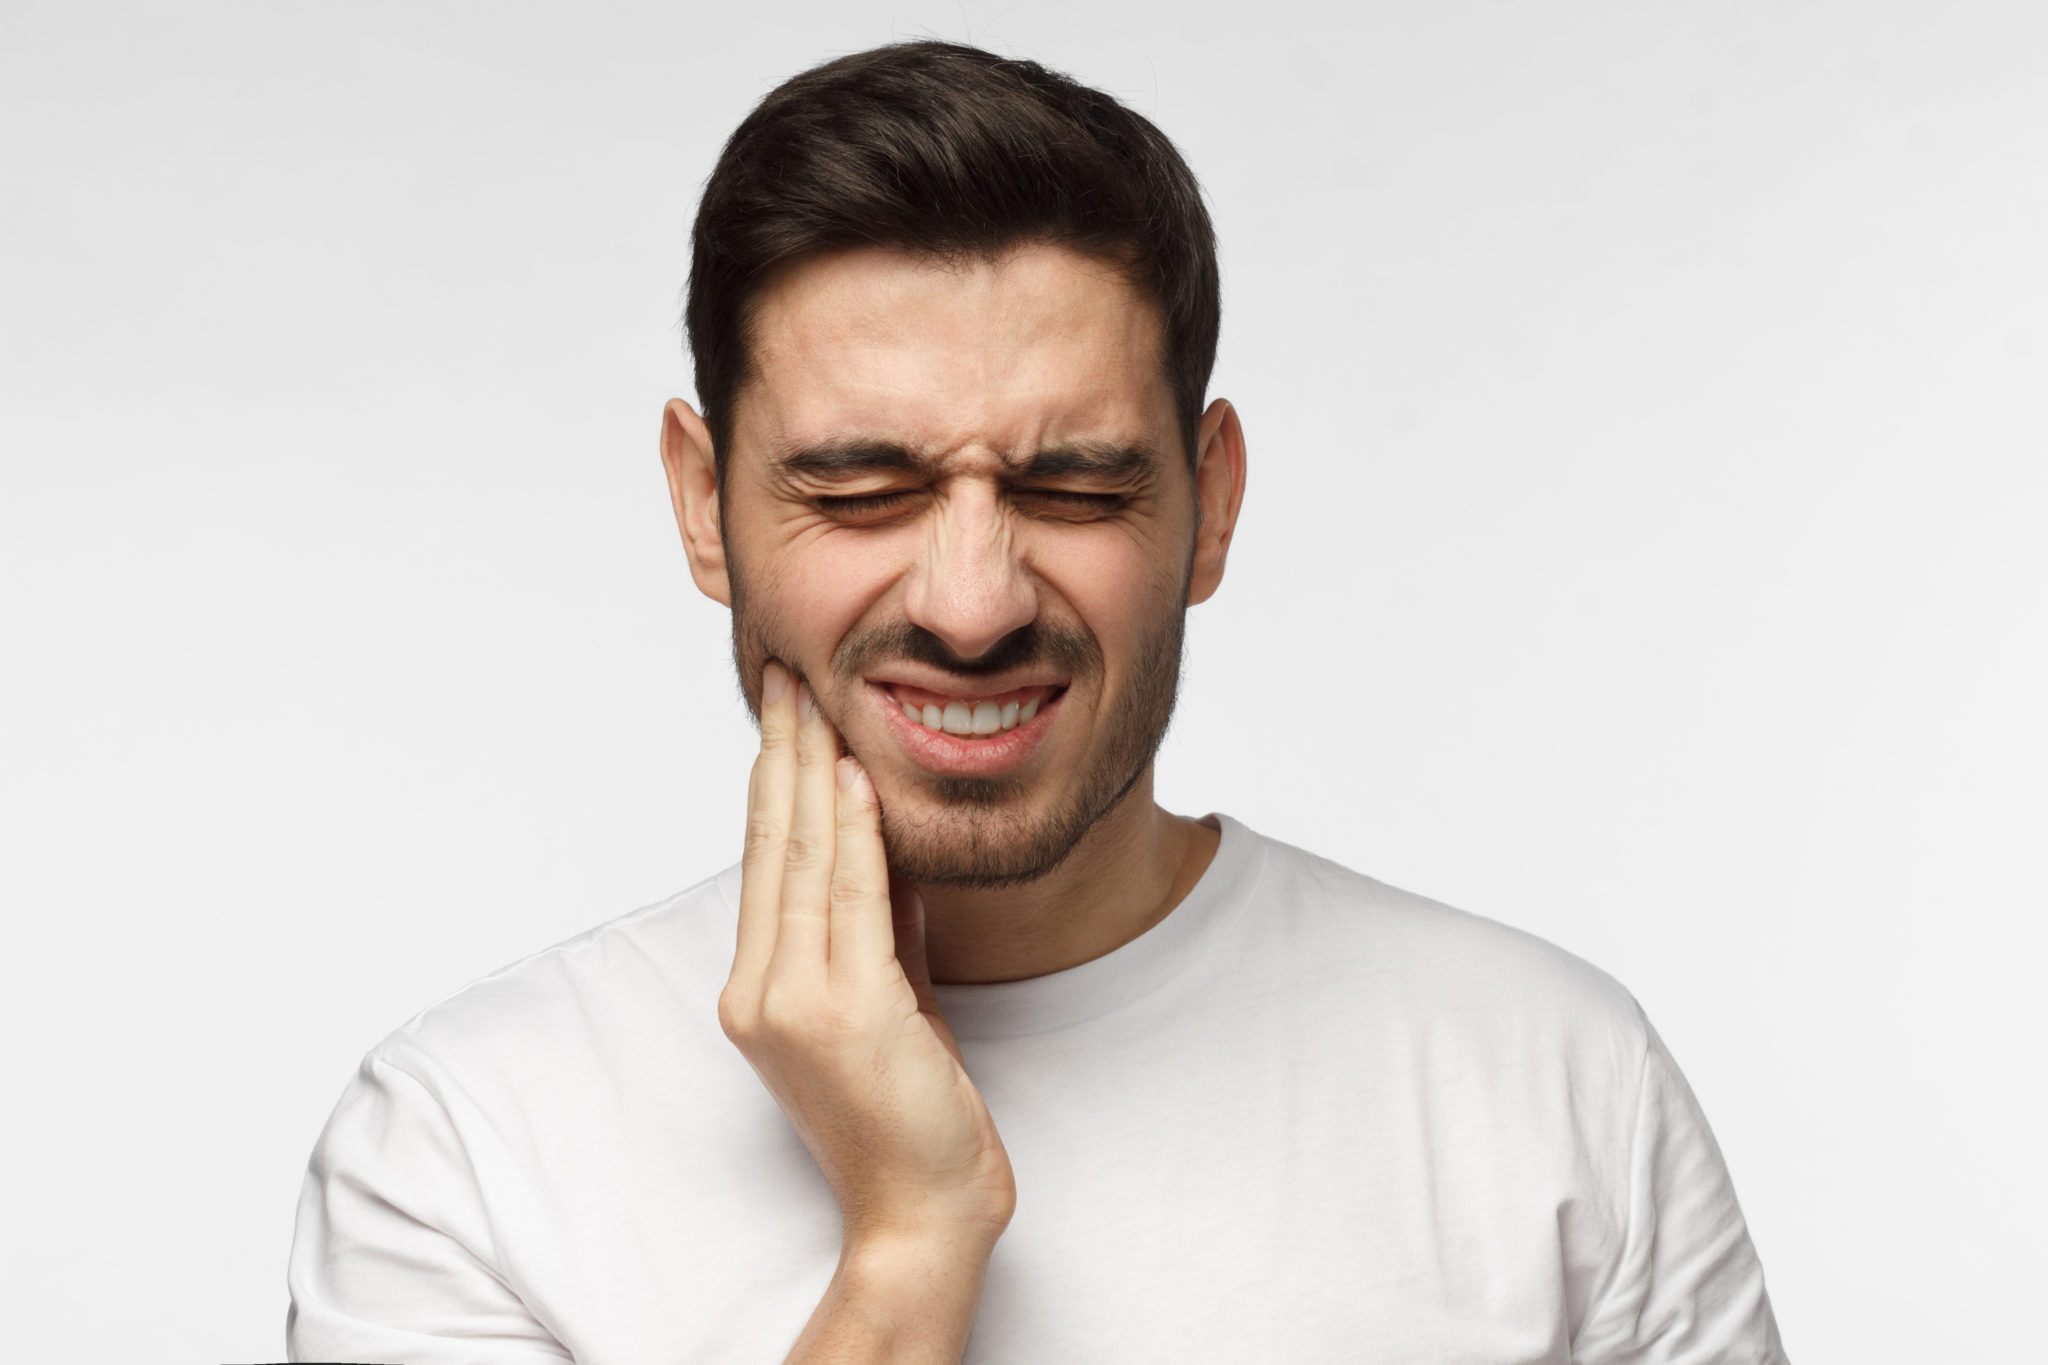 A man suffering from TMJ jaw pain.